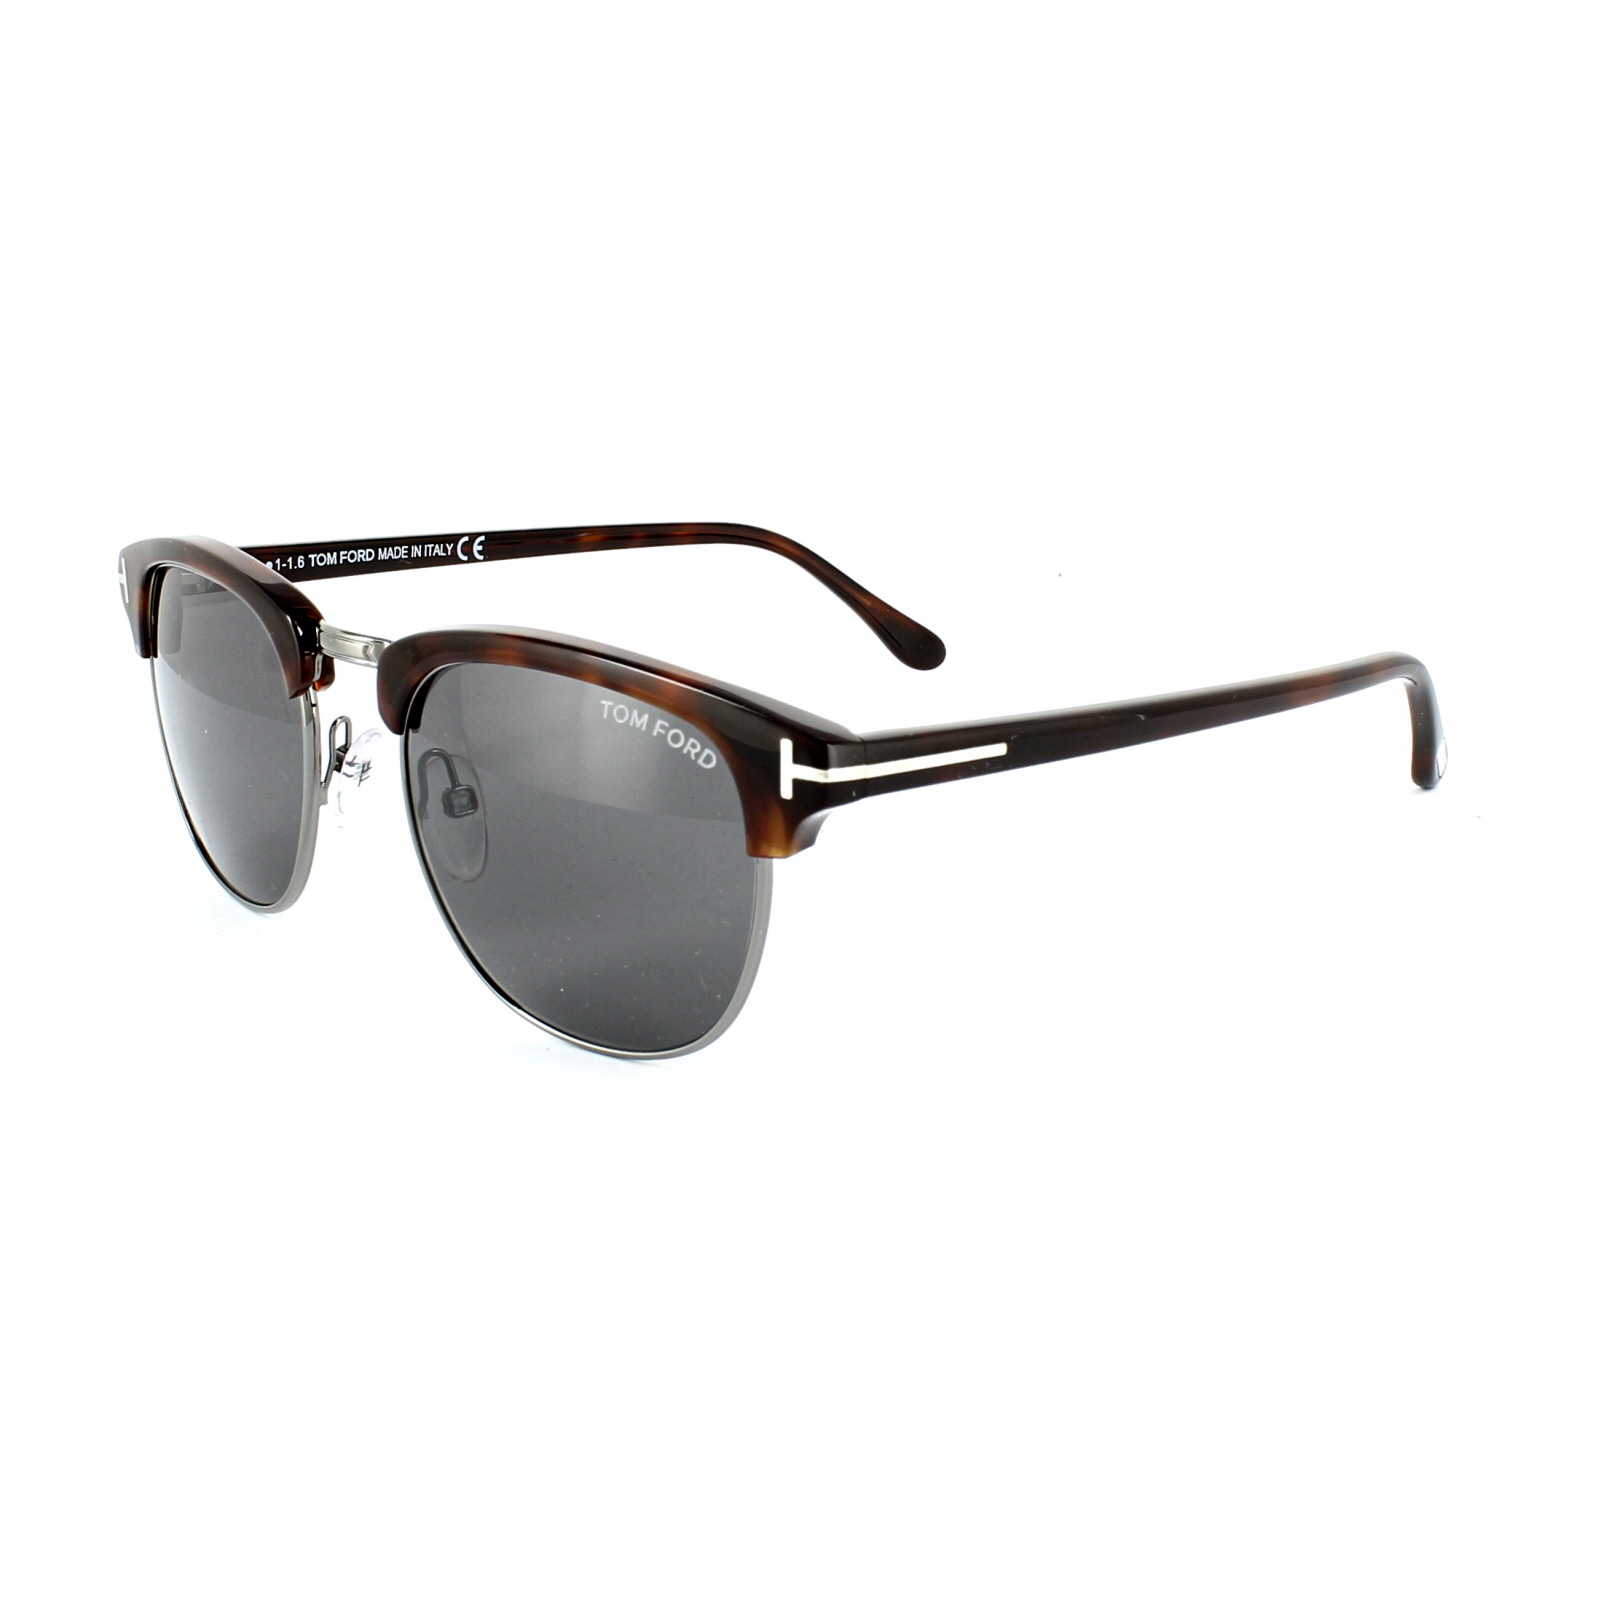 206a0ec2eae71 Sentinel Tom Ford Sunglasses 0248 HENRY 52A Dark Havana Smoke Grey